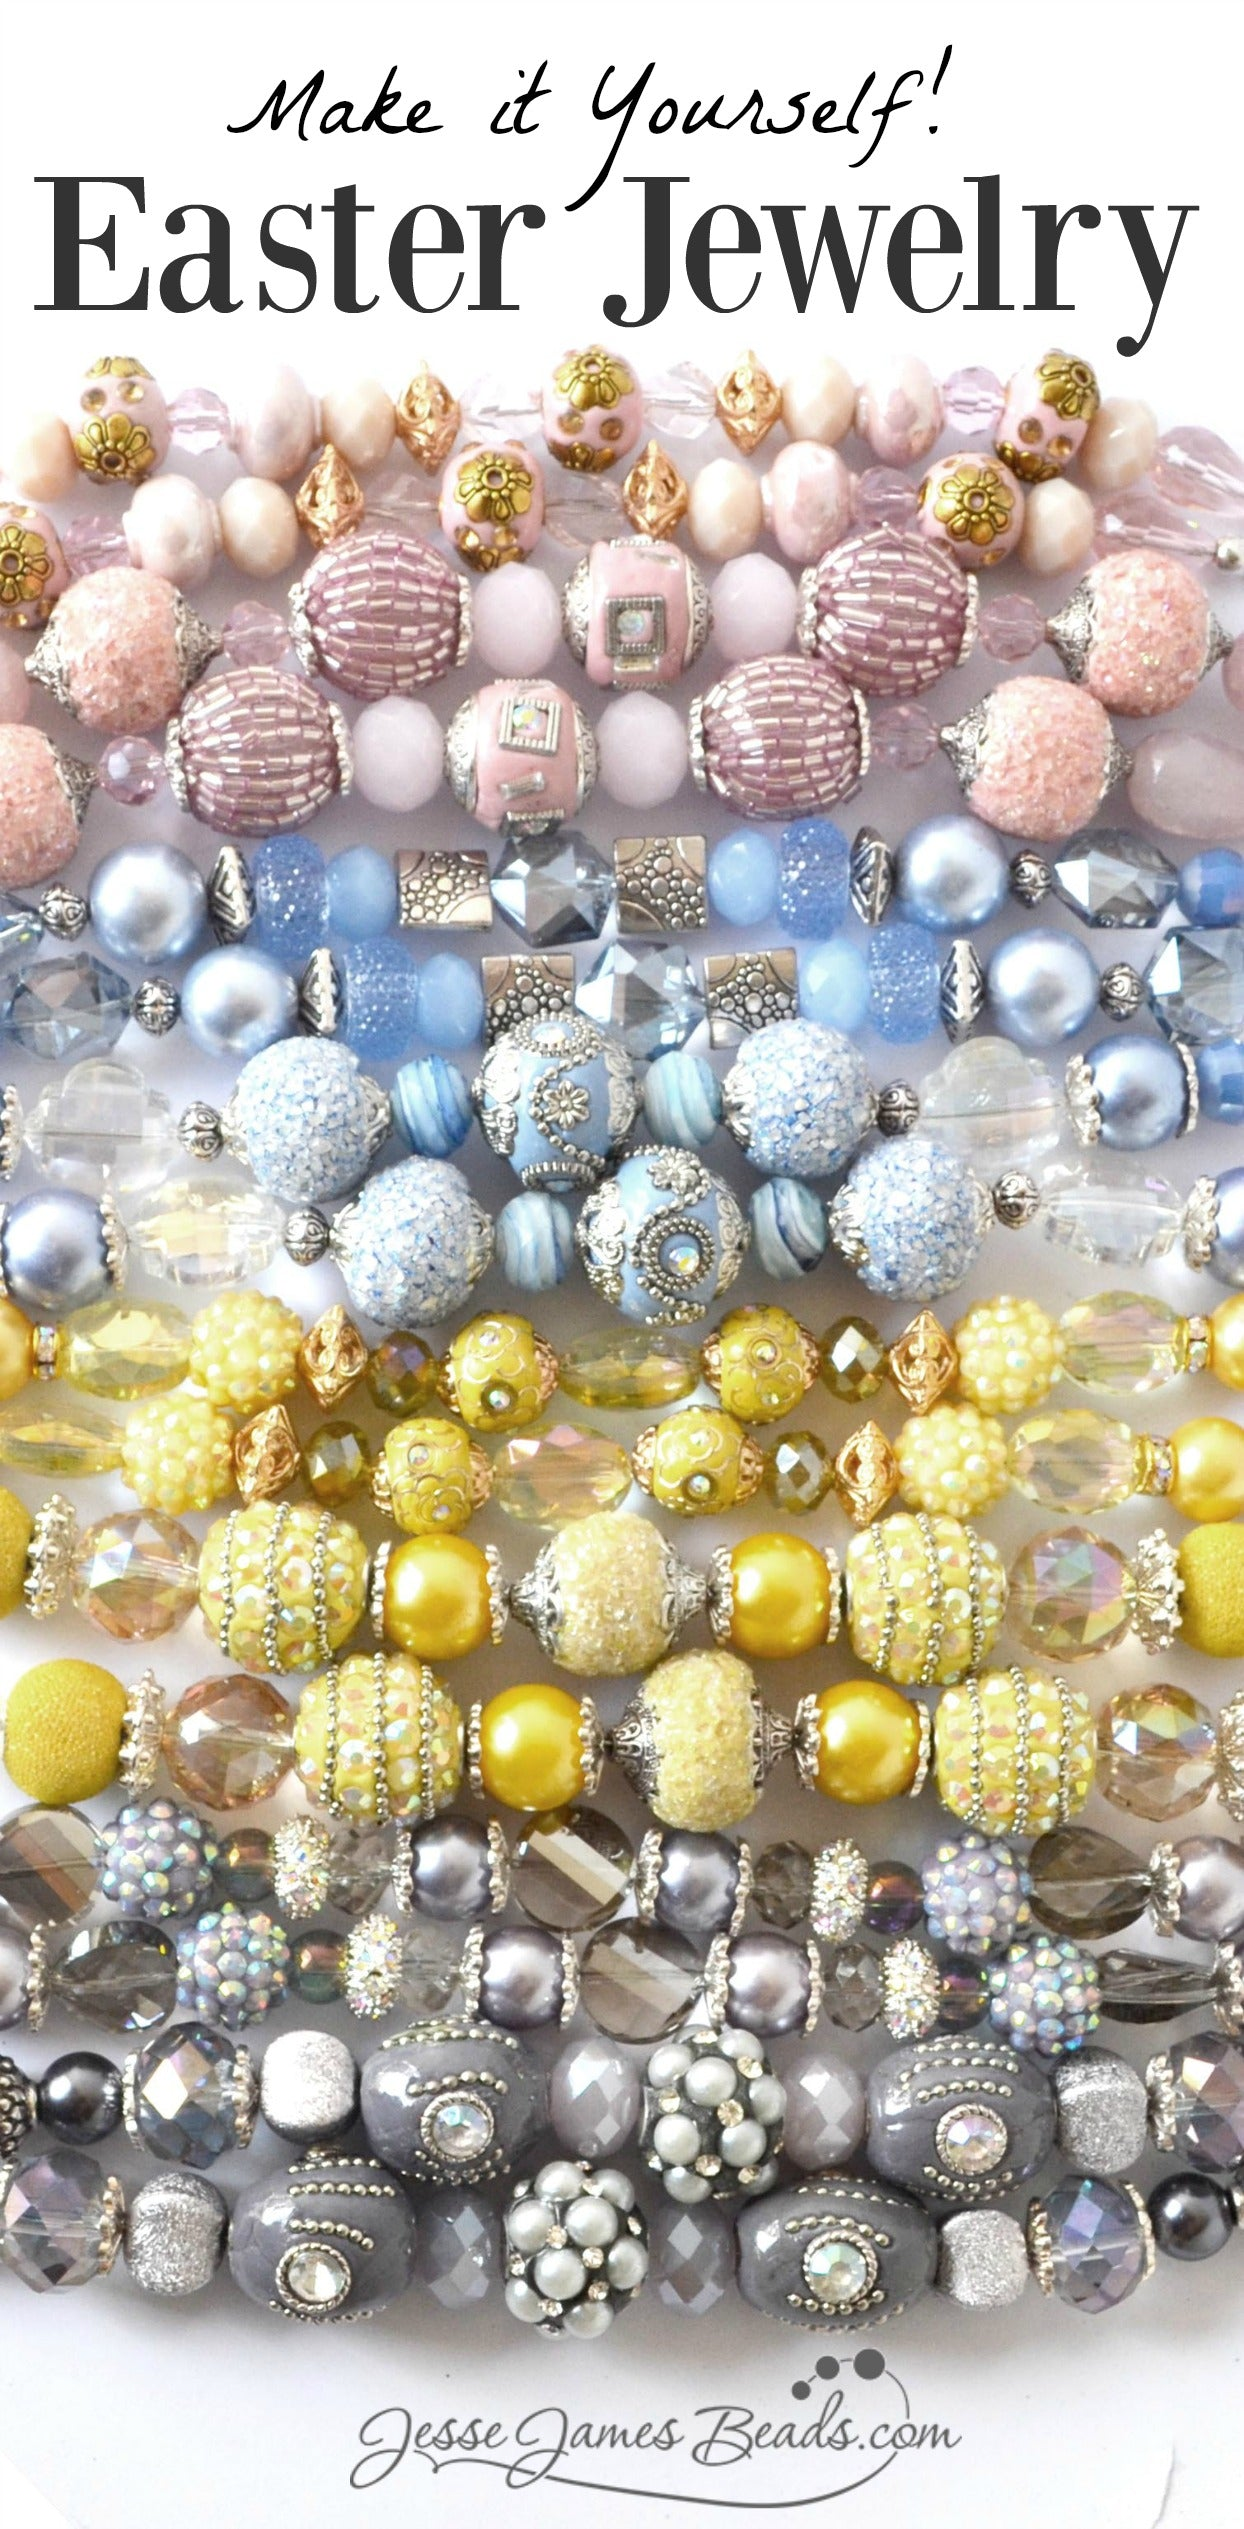 Make Easter Jewelry - Pastel beads for making springtime jewelry and spring crafts